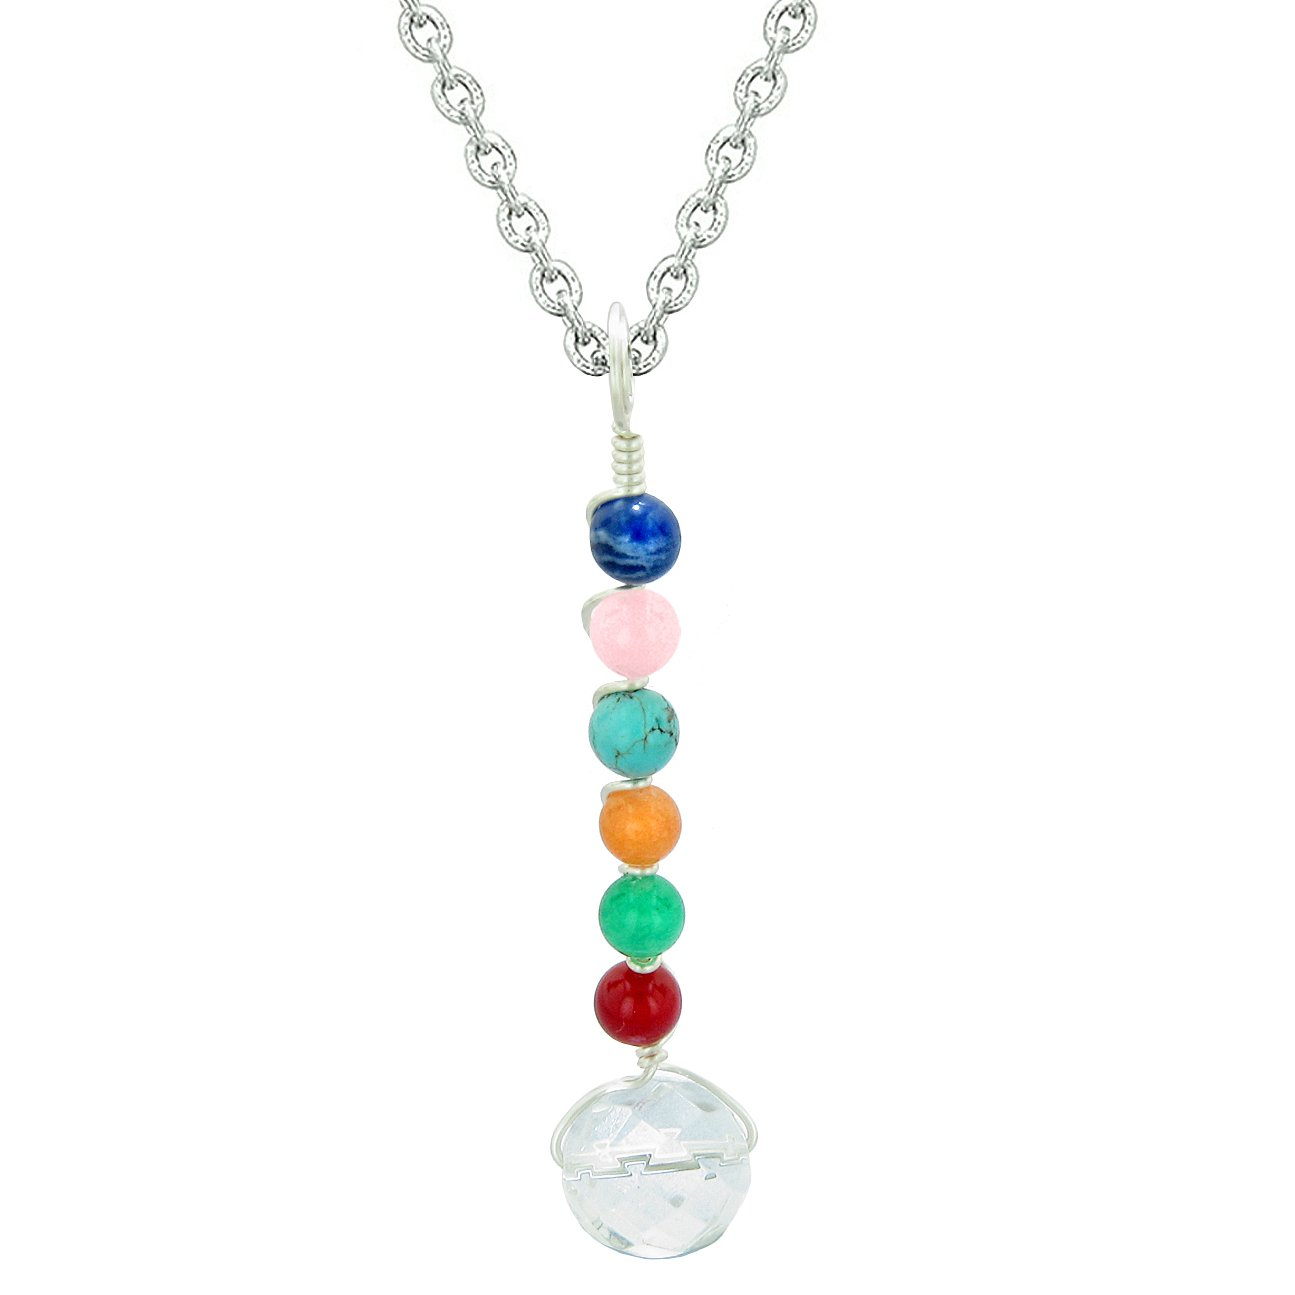 Chakra Wish Bead Amulet Faceted Crystal Quartz Colorful Gemstones Lucky Pendant 22 Inch Necklace